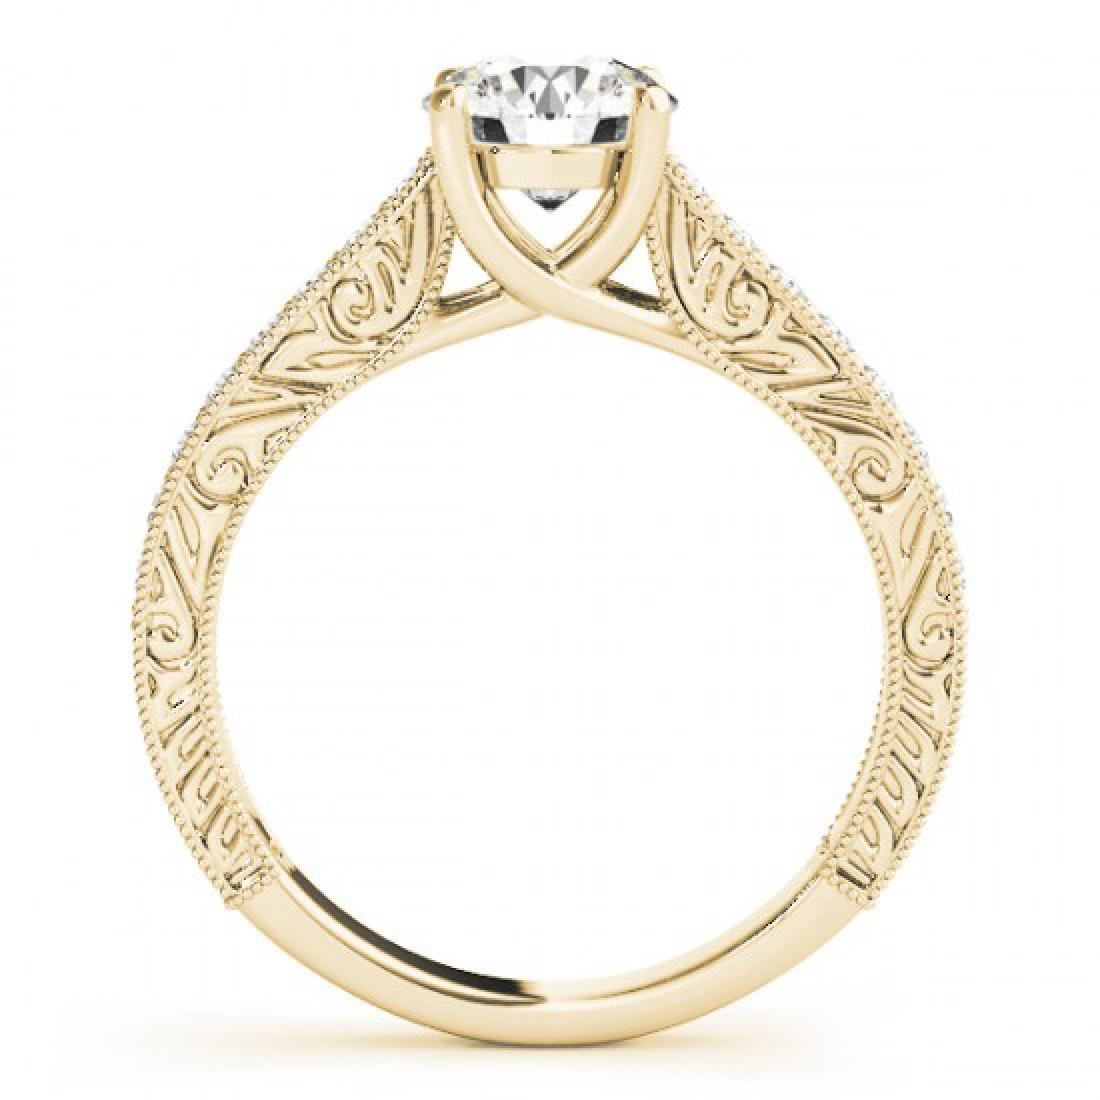 1.82 CTW Certified VS/SI Diamond Solitaire Ring 14K - 2